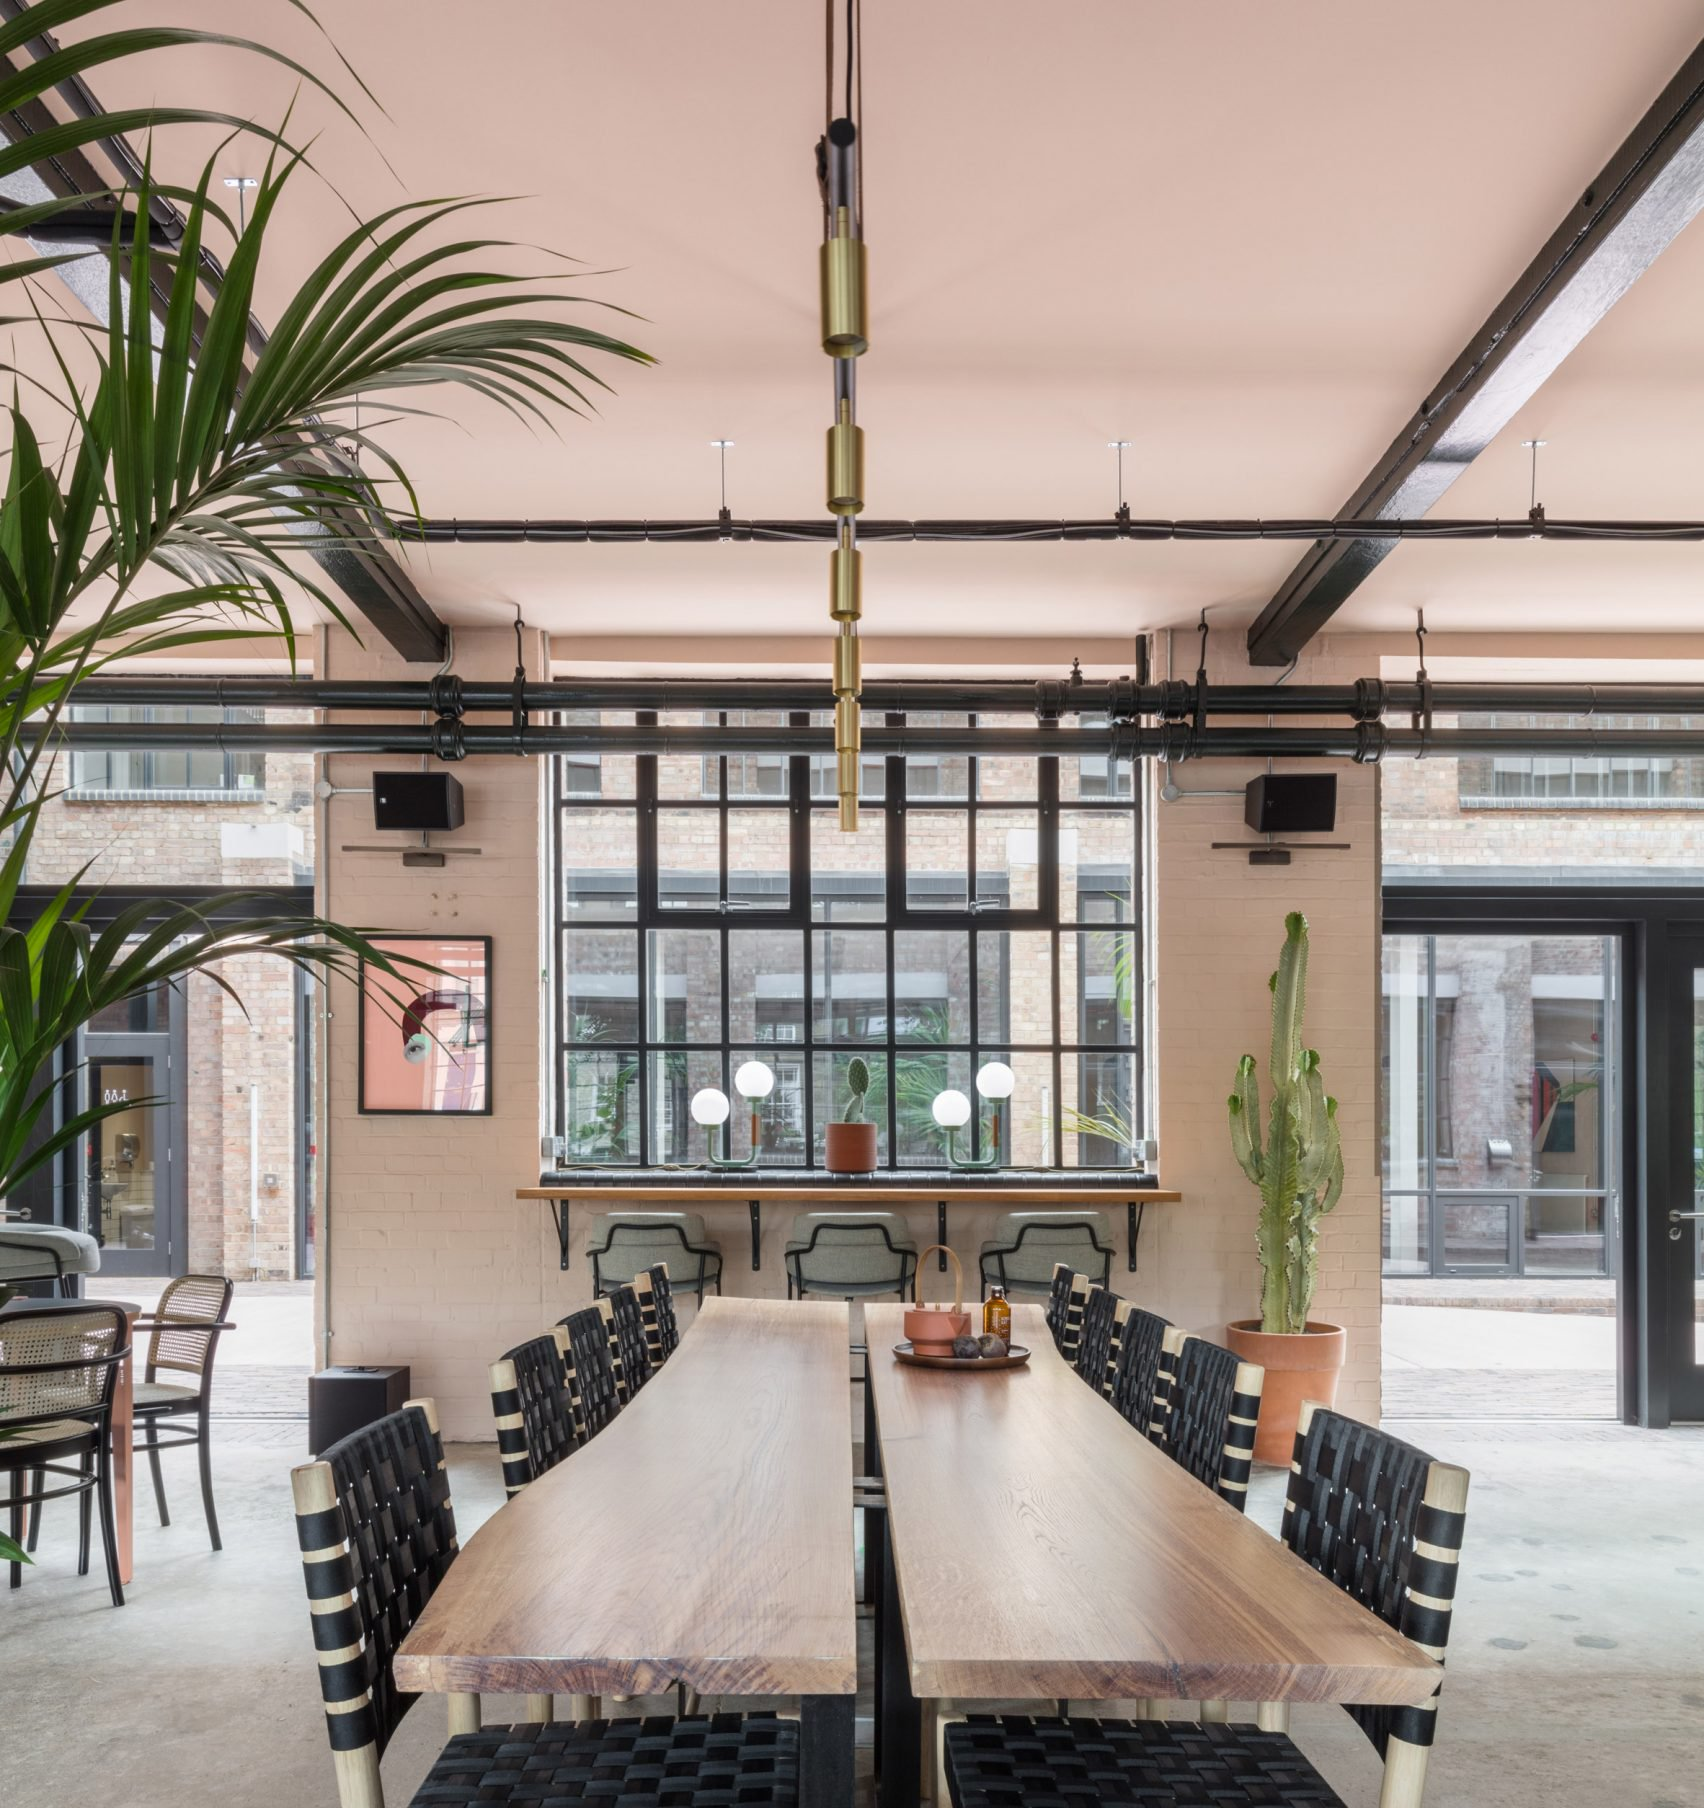 Office space design with creative inspiration in east london for Interior inspiration